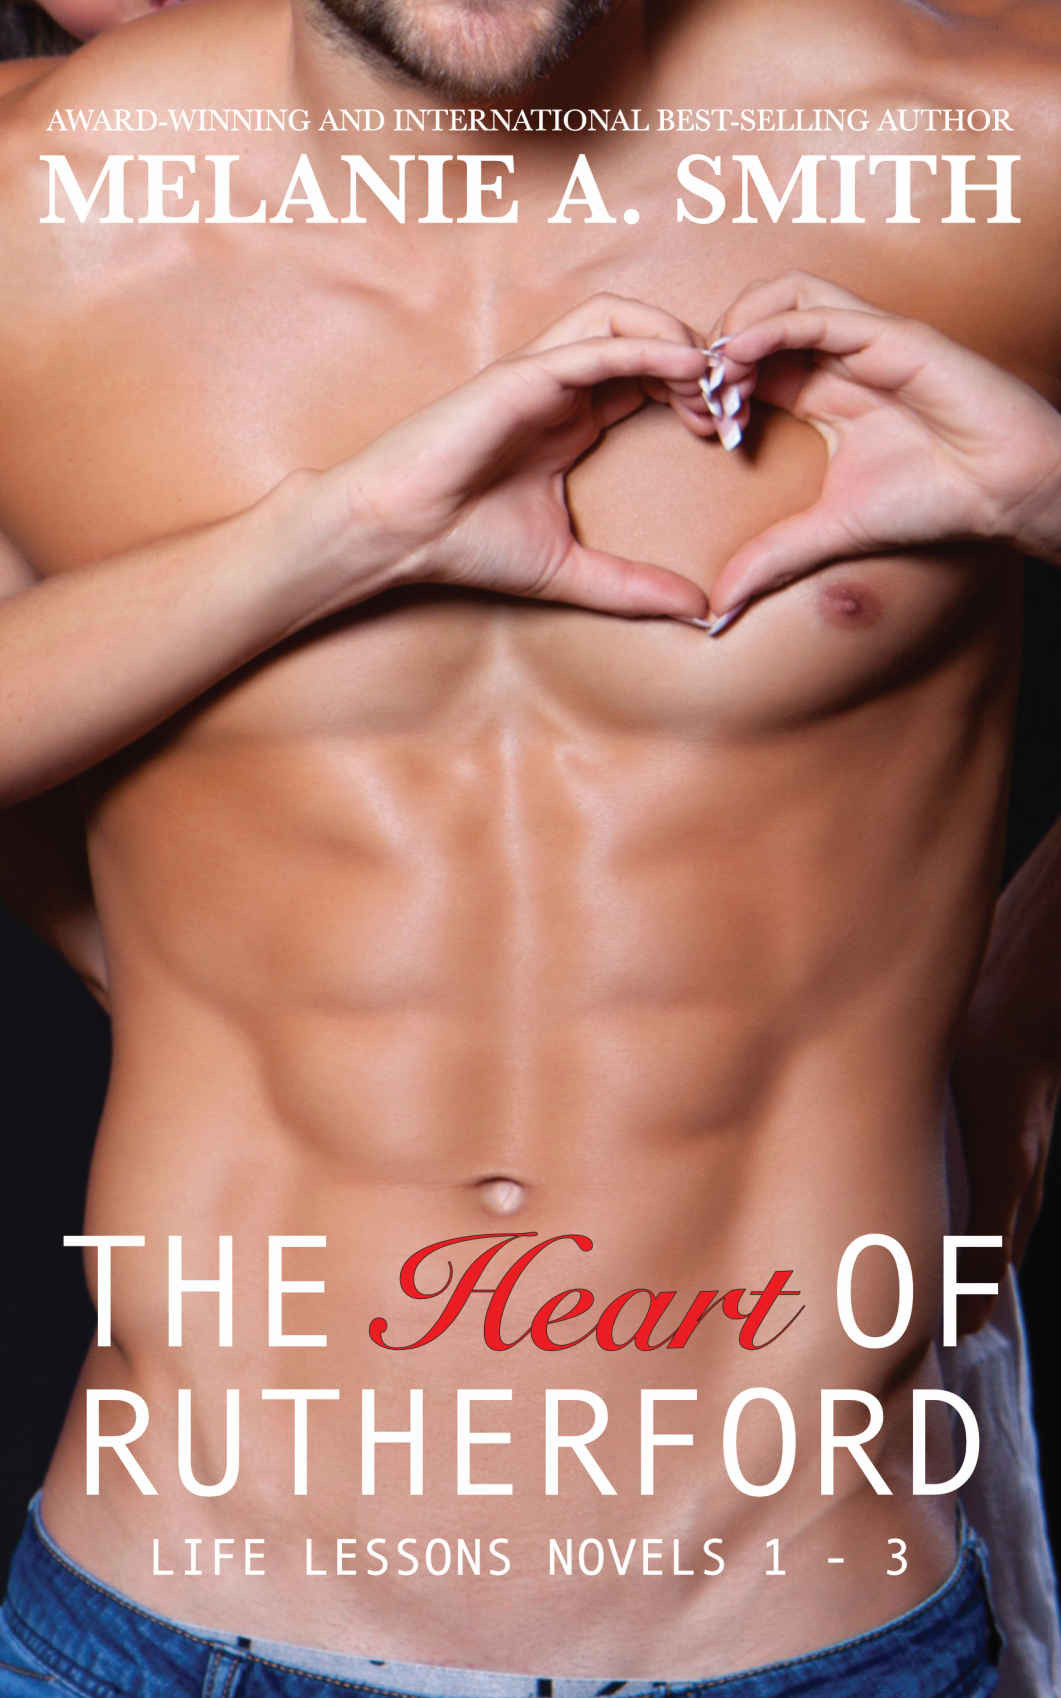 The Heart of Rutherford: Life Lessons Novels 1 - 3